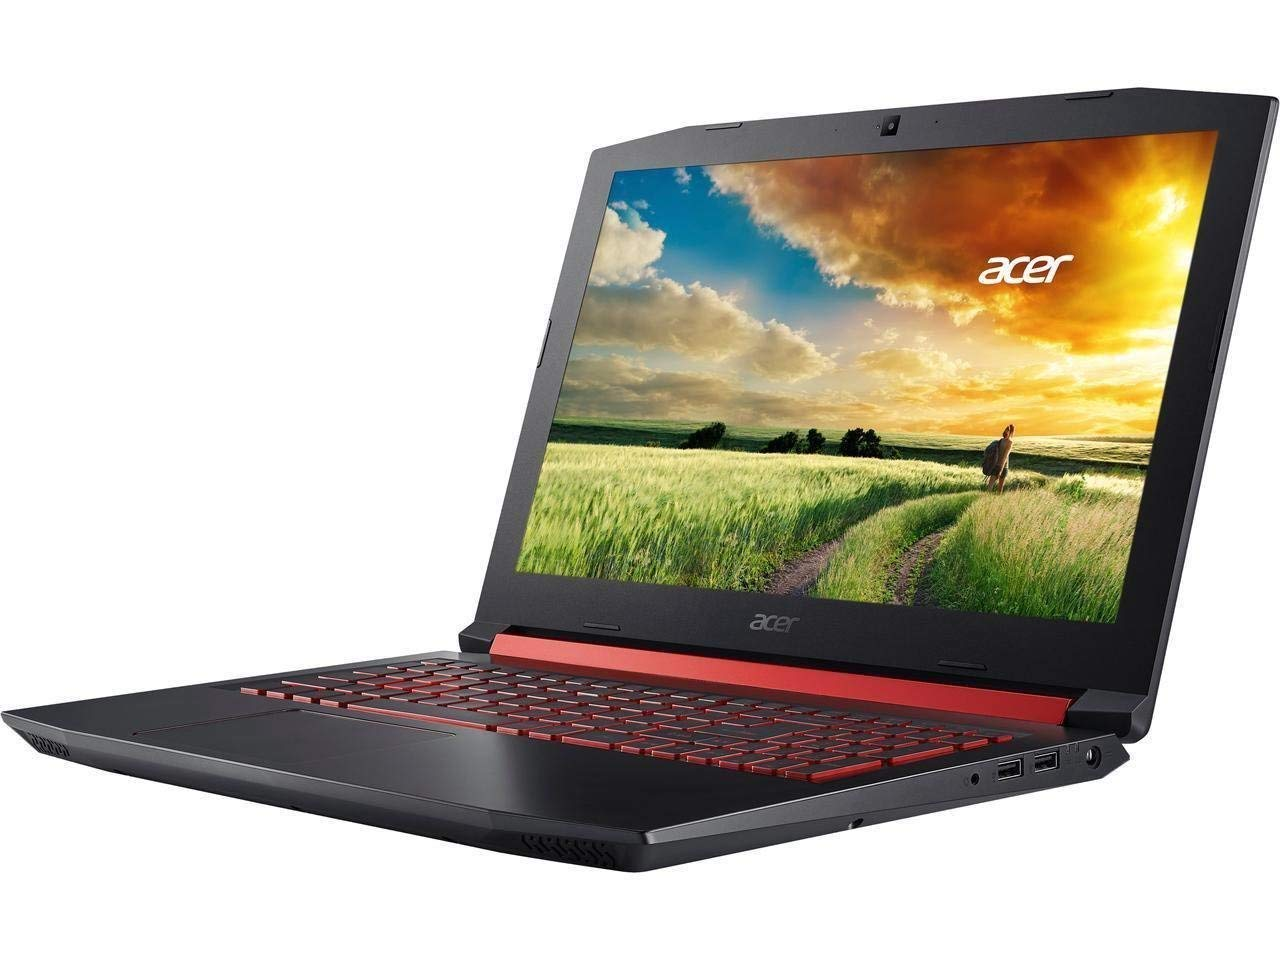 Acer Nitro 5 (2018) Best Gaming Laptop in India